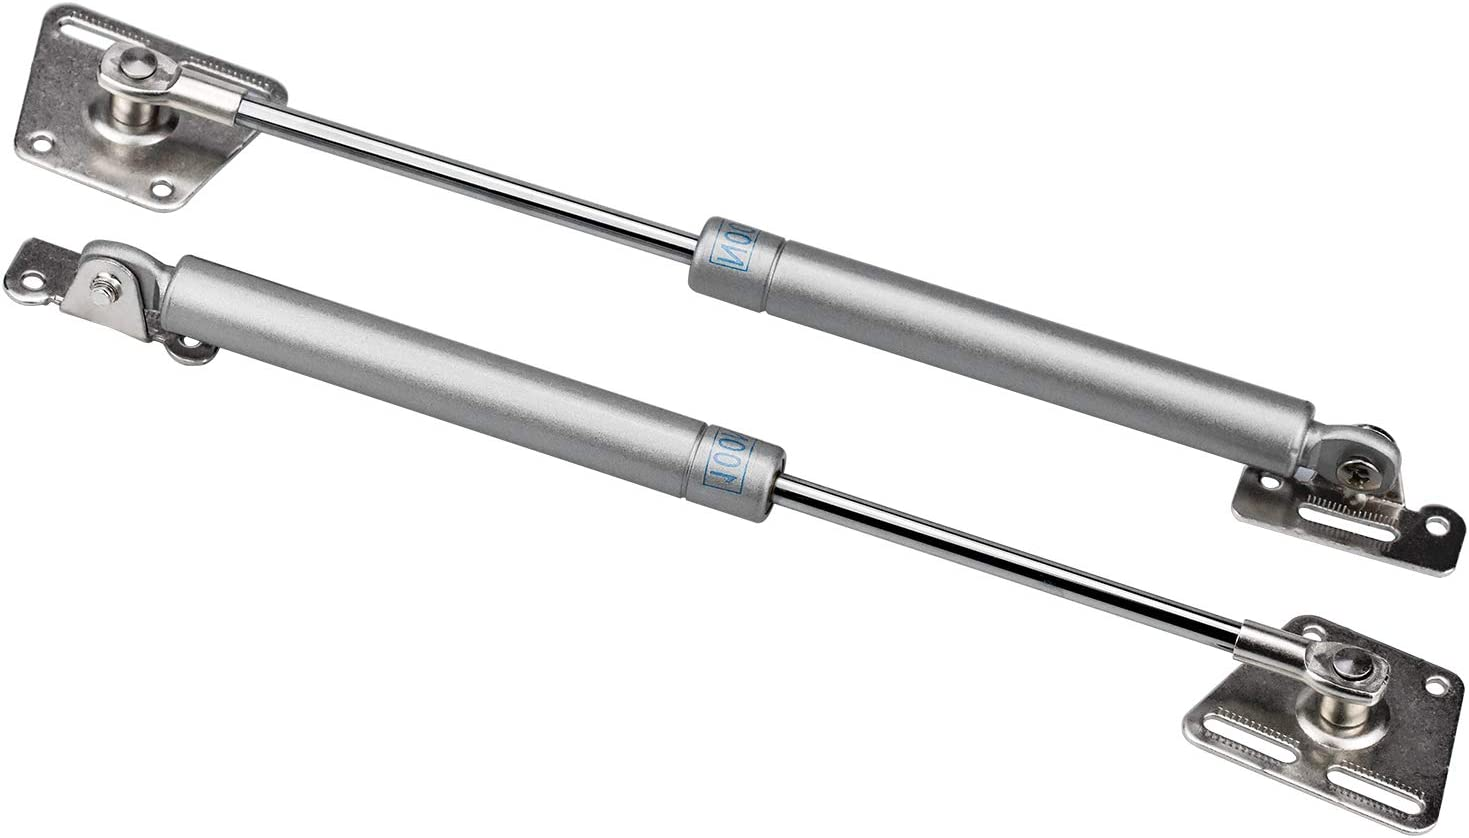 100N 2 Pack Gas Strut Telescopic Gas Spring Lift lid Stay Hinge for Door Stays Kitchen Cabinet Cupboard Toy Box Spring Hinge